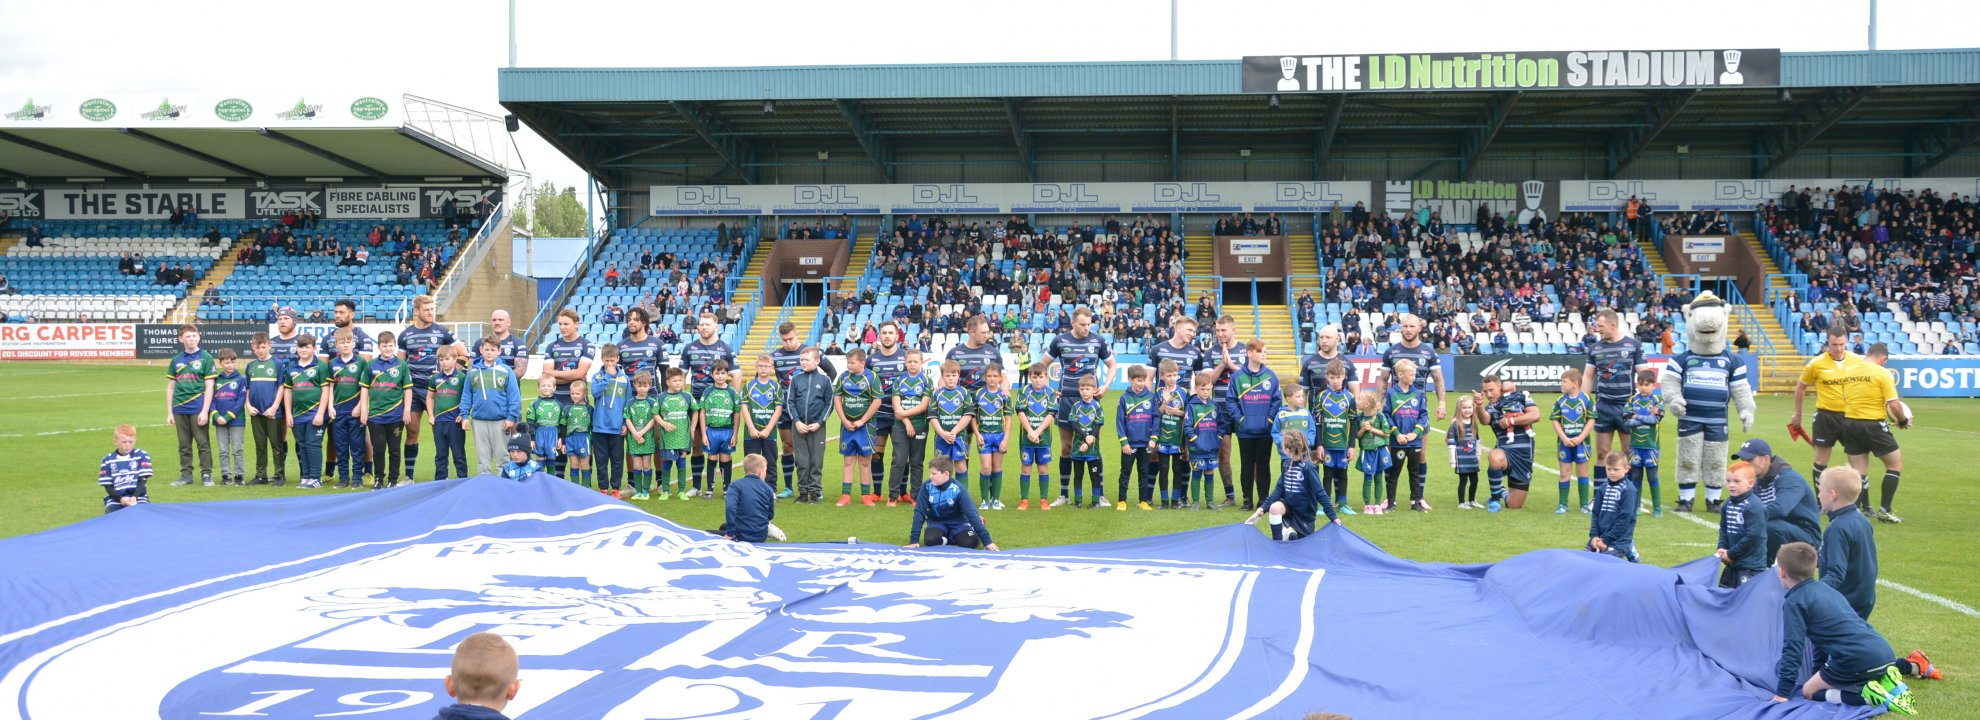 Volunteer Featherstone Rovers Foundation Community/ Match Day Activities Banner